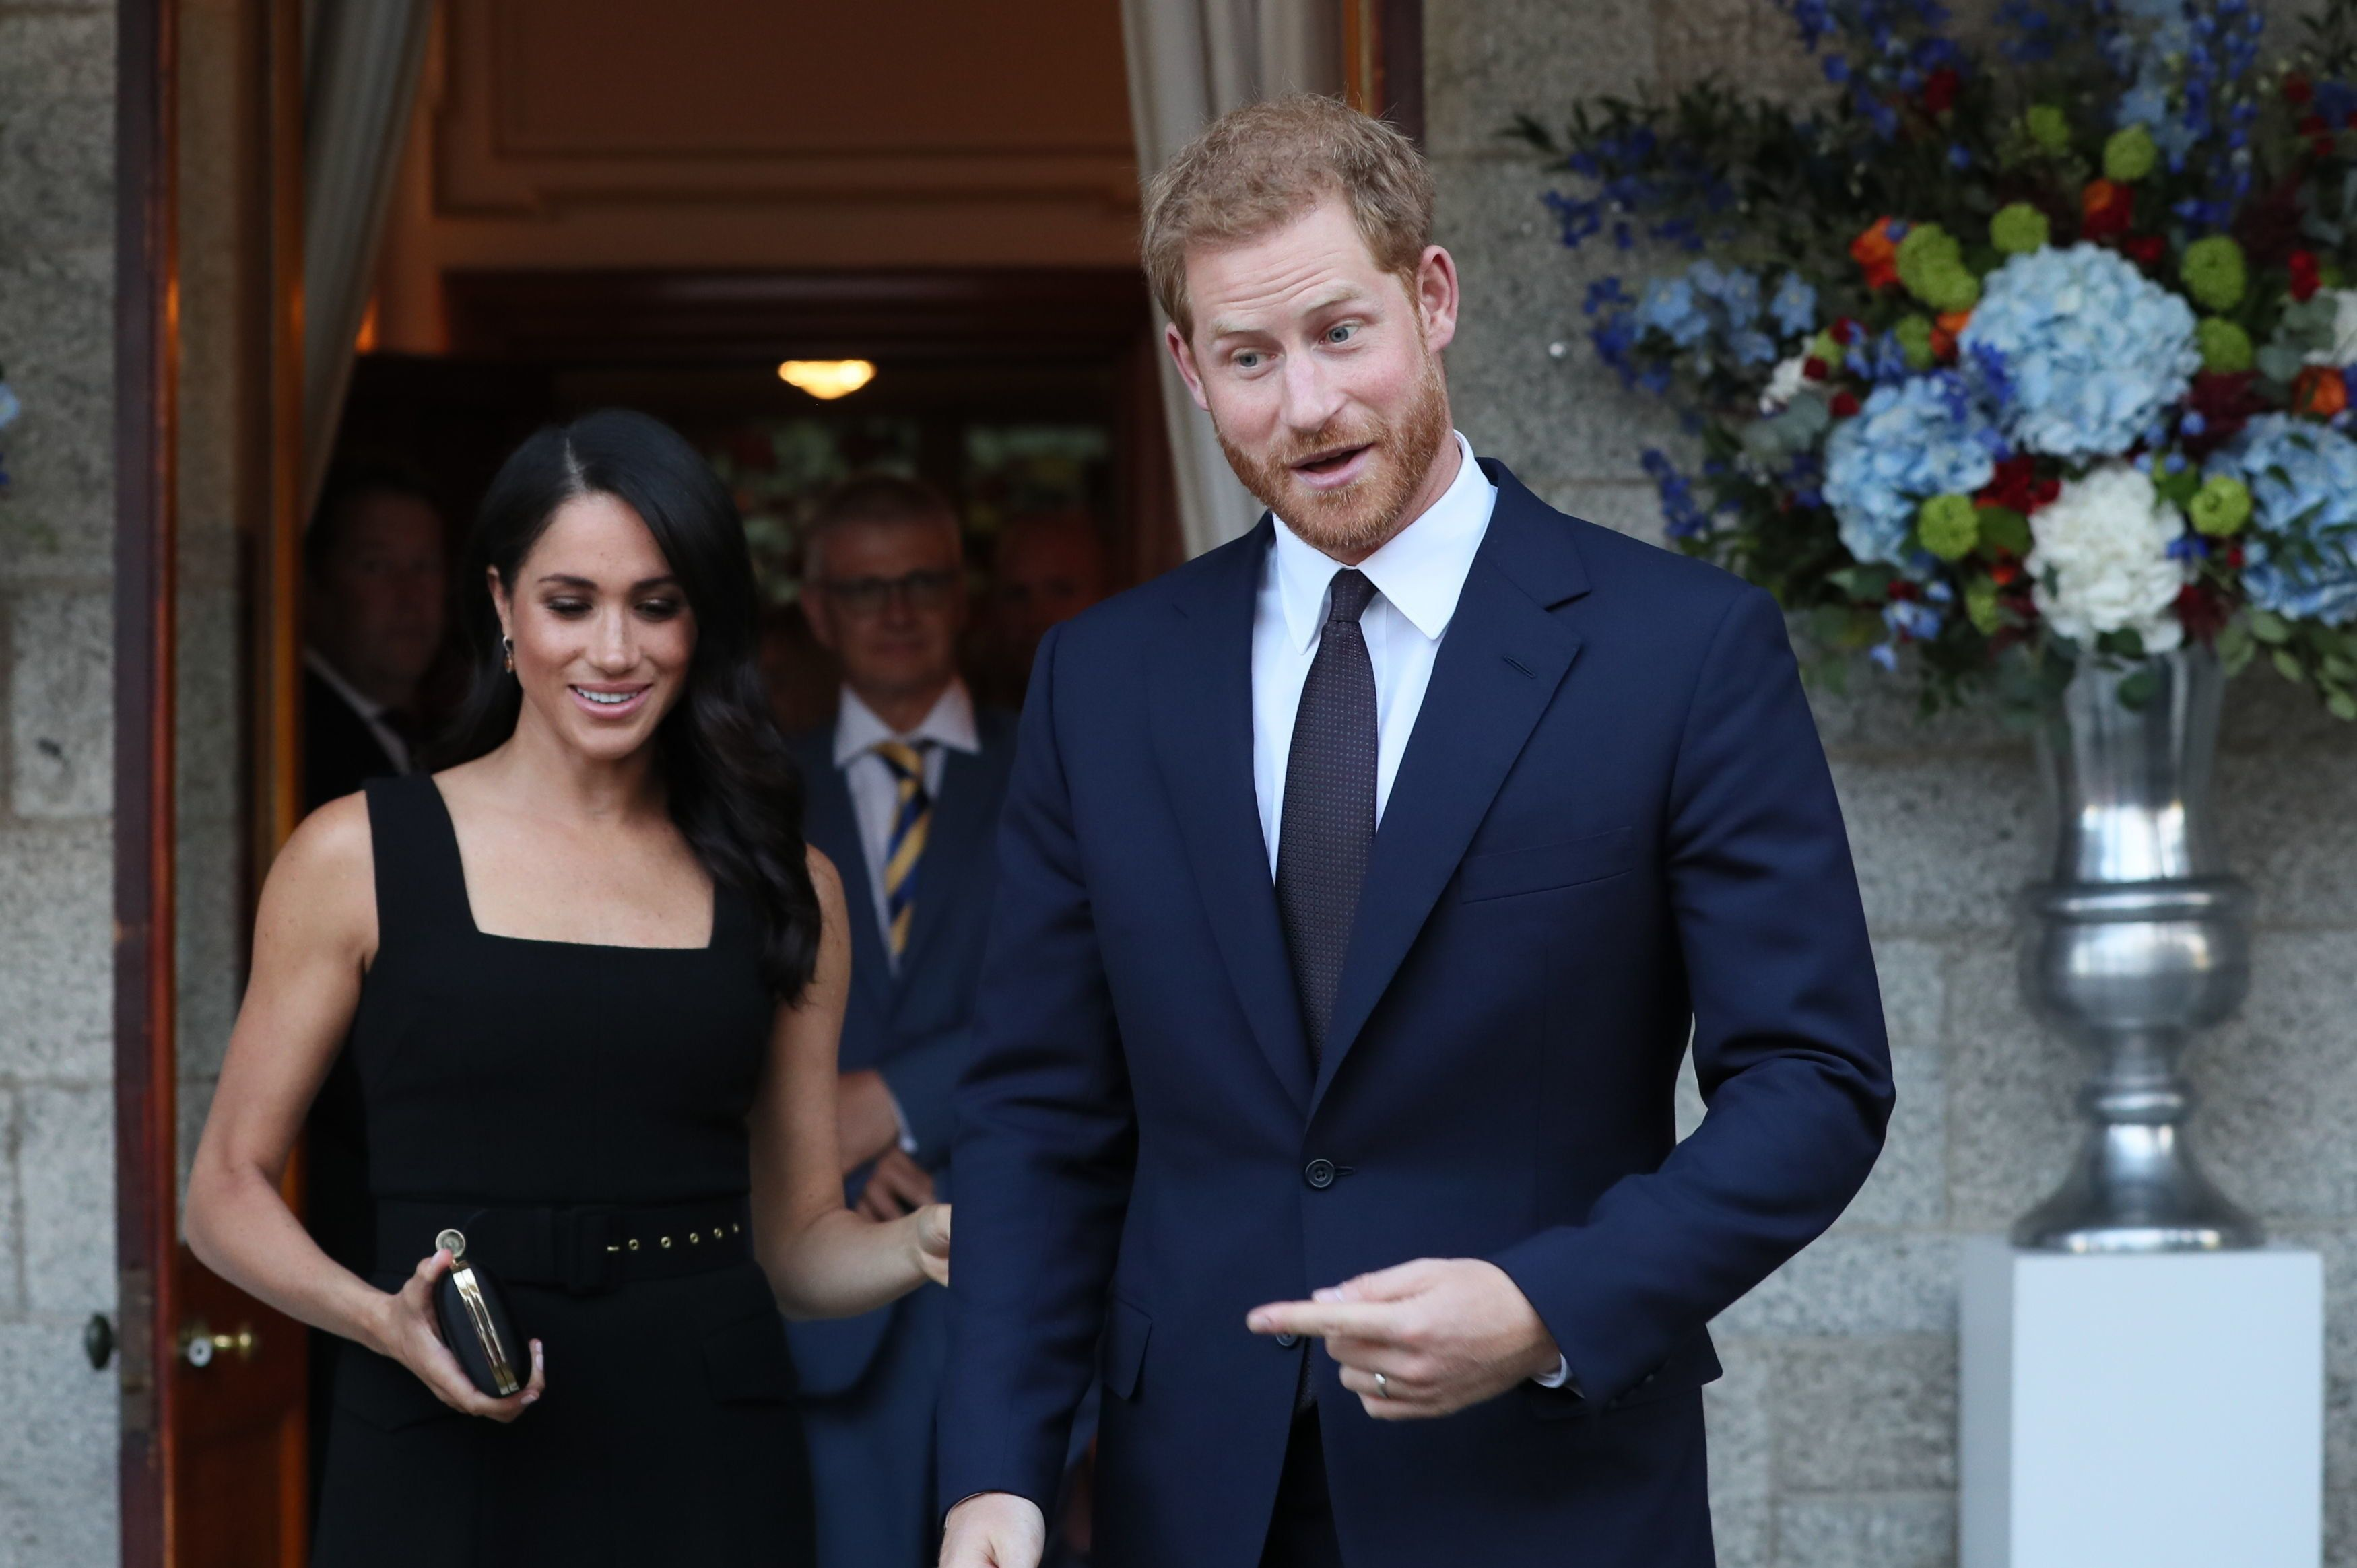 The Duke and Duchess of Sussex visited Dublin earlier this week.